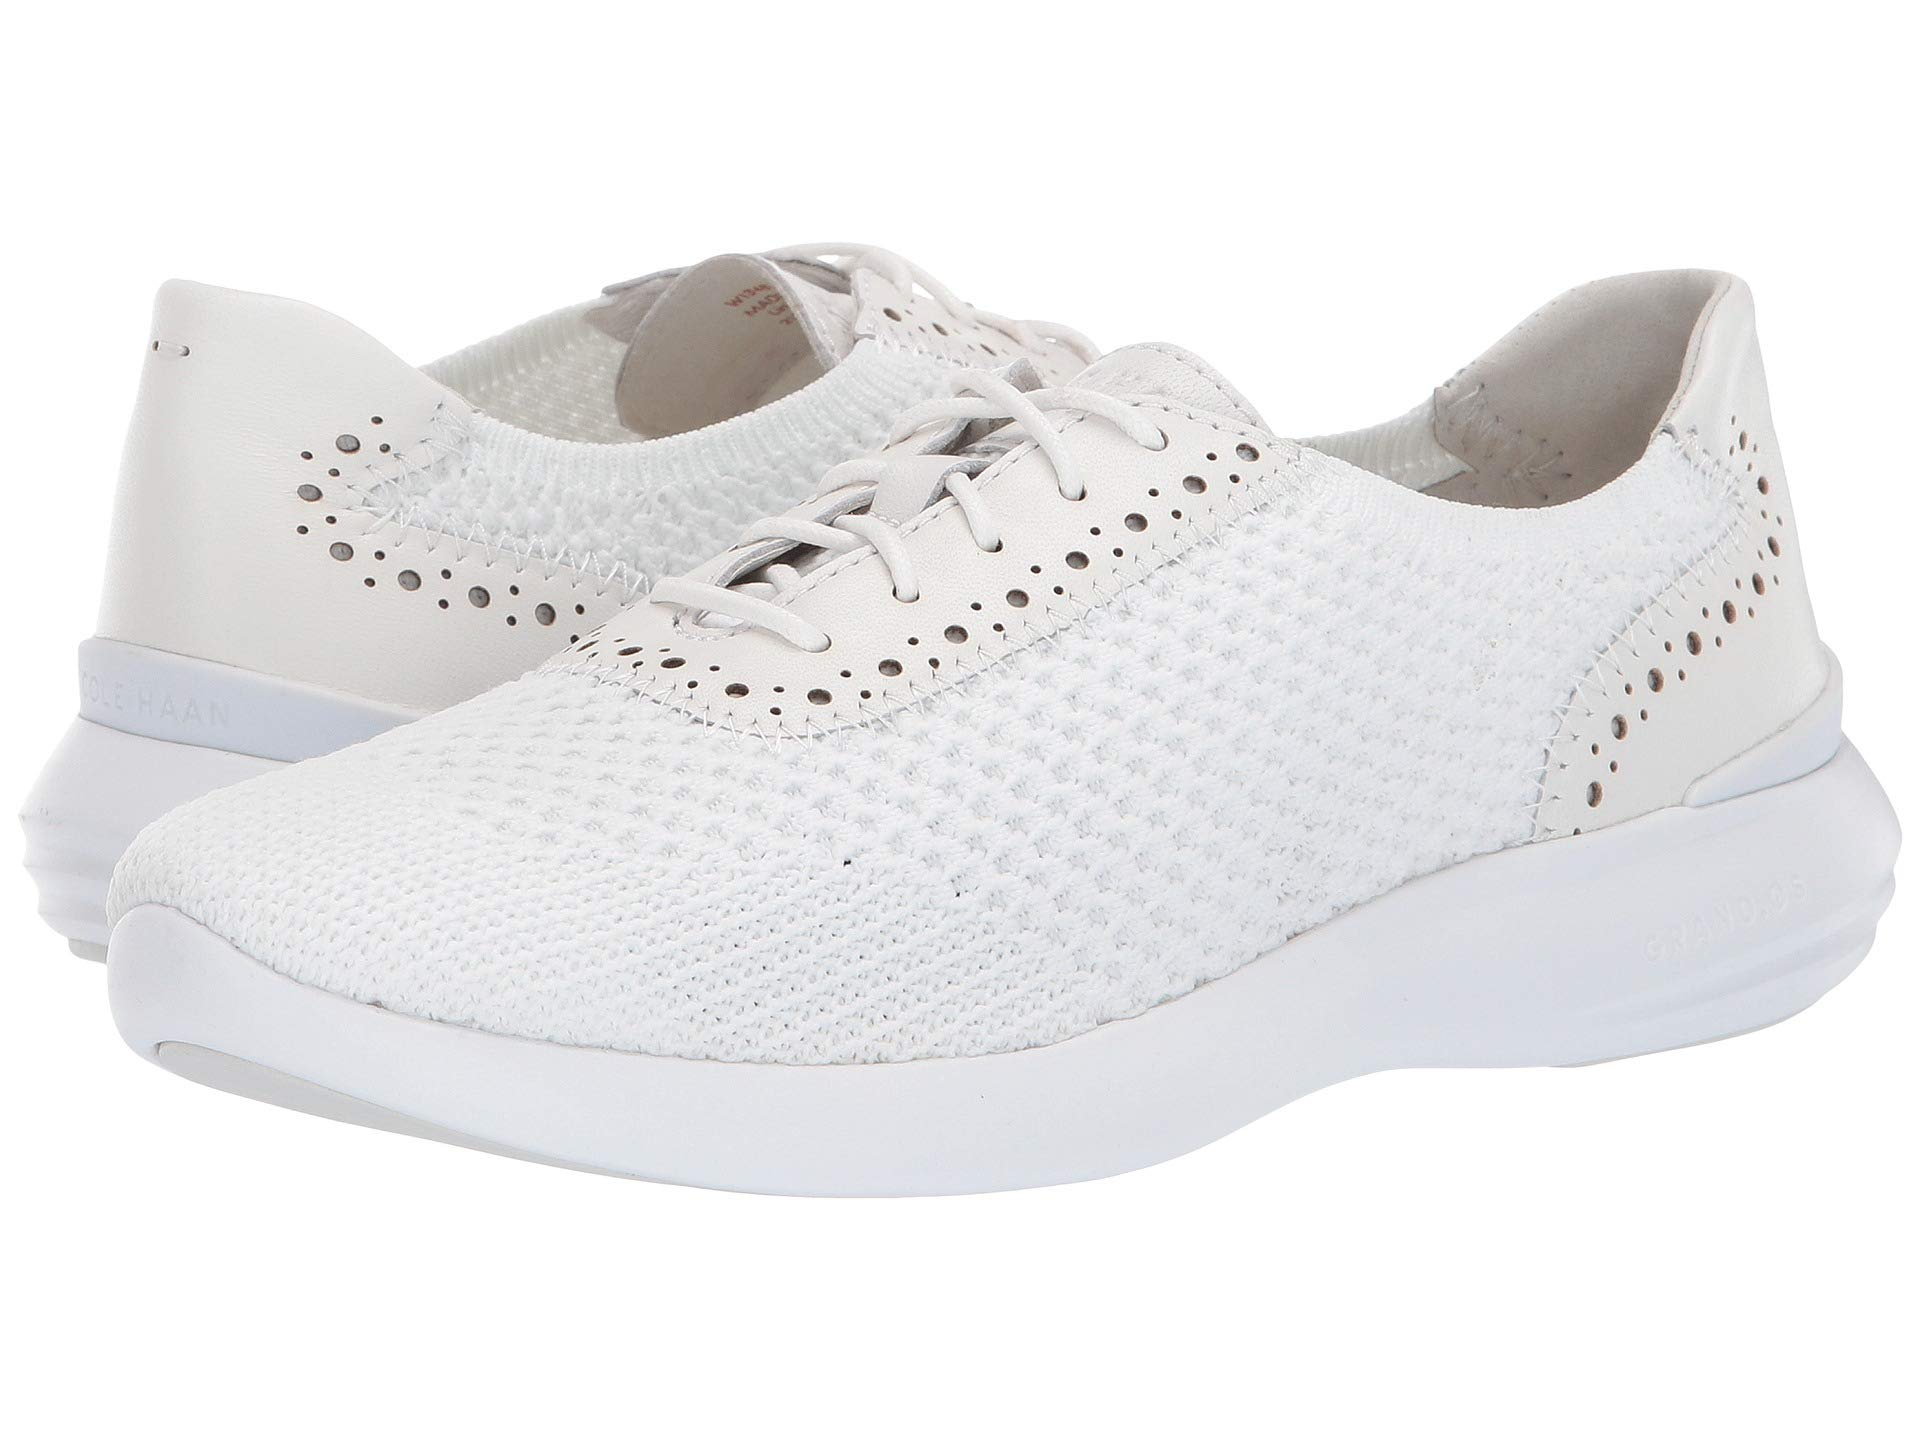 Кроссовки Cole Haan 2.0 Ella Grand Knit Oxford White, 36 (230 мм)